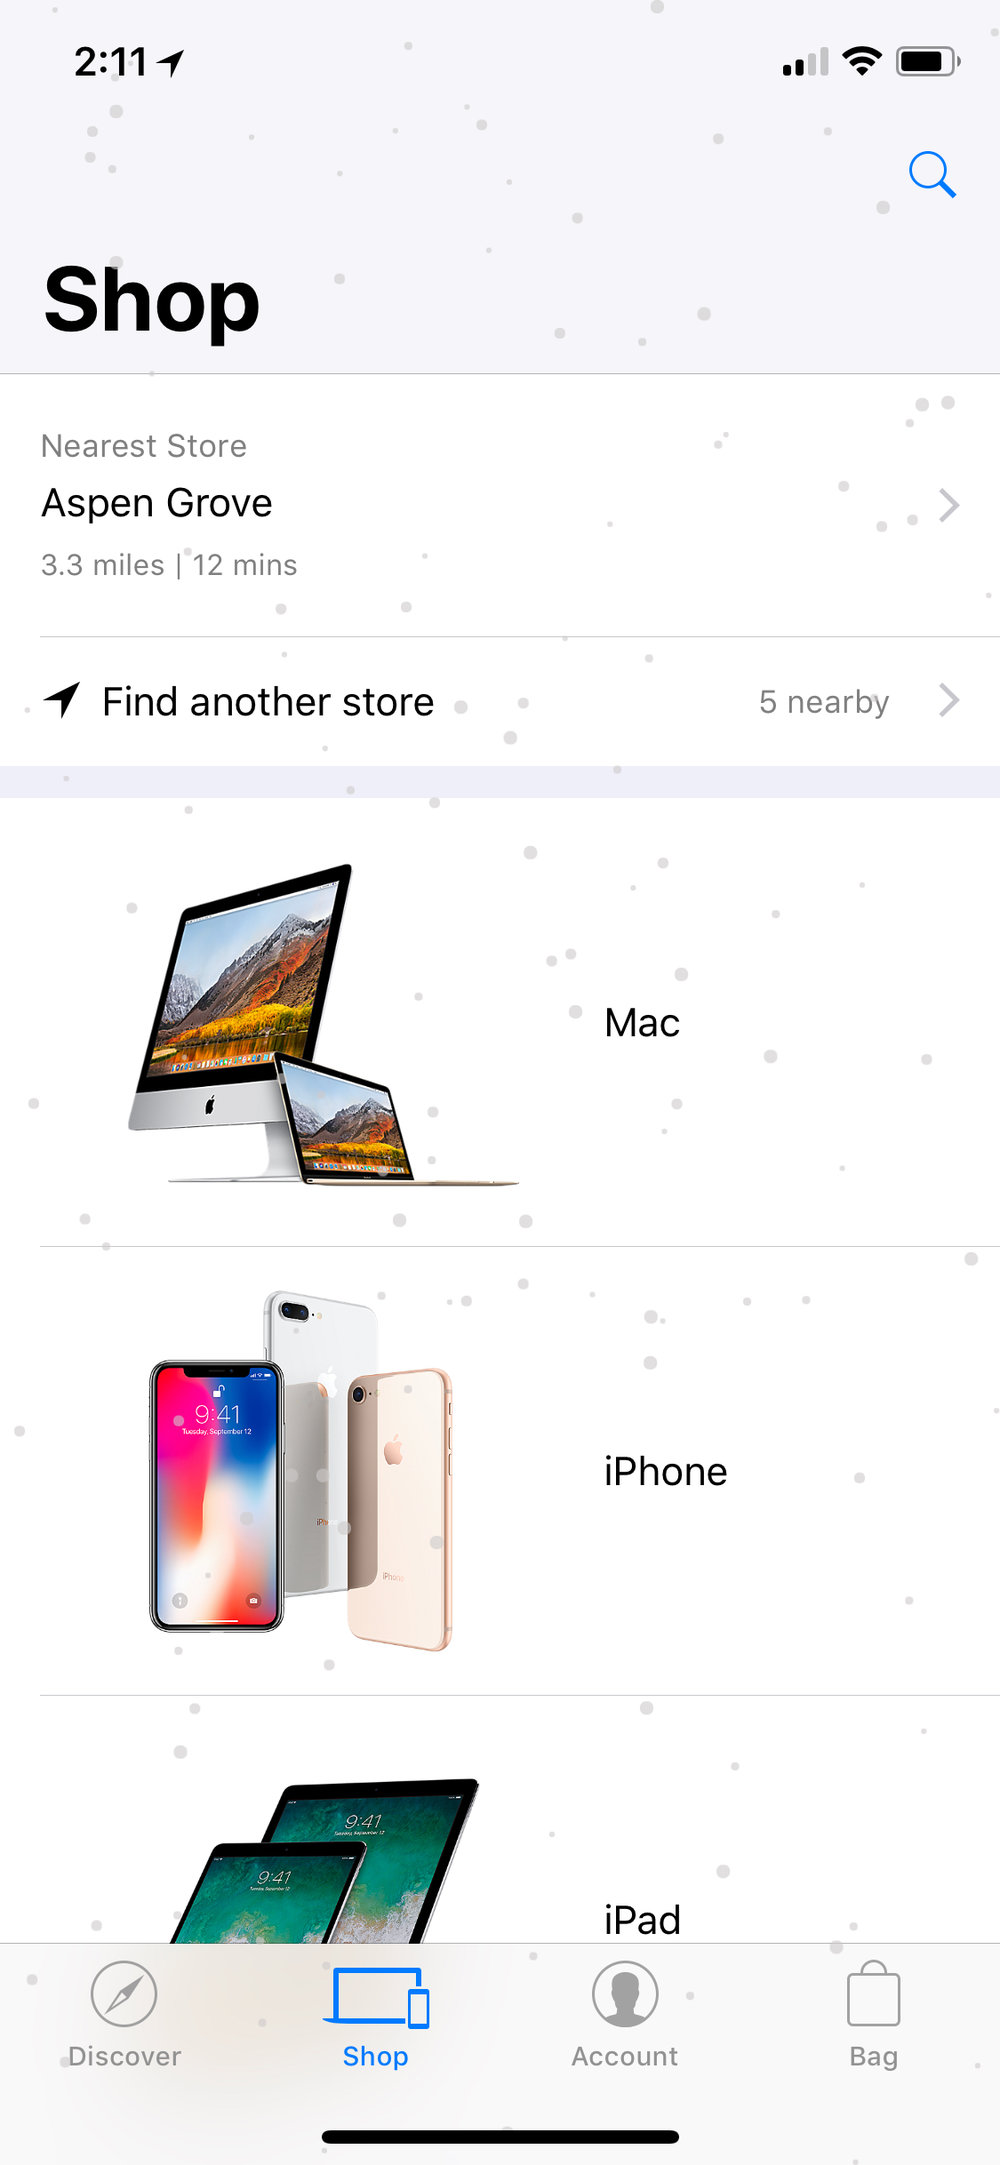 It's snowing in the Apple Store app!